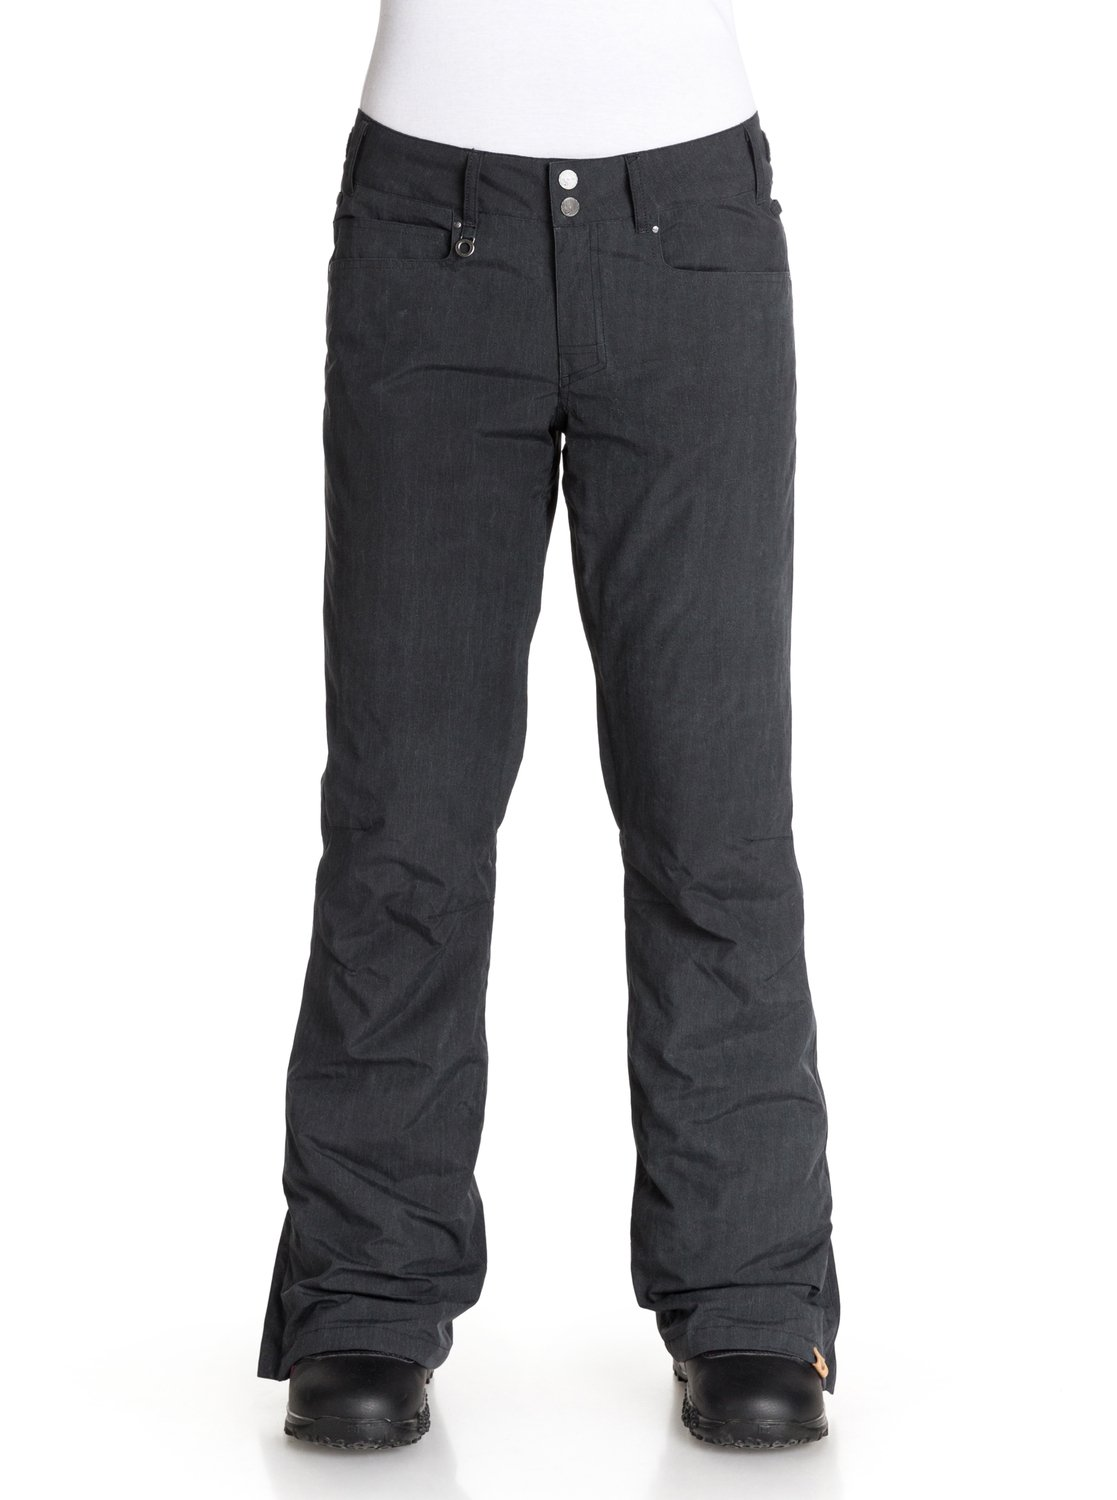 Wood Run - Snowboard Pants от Roxy RU